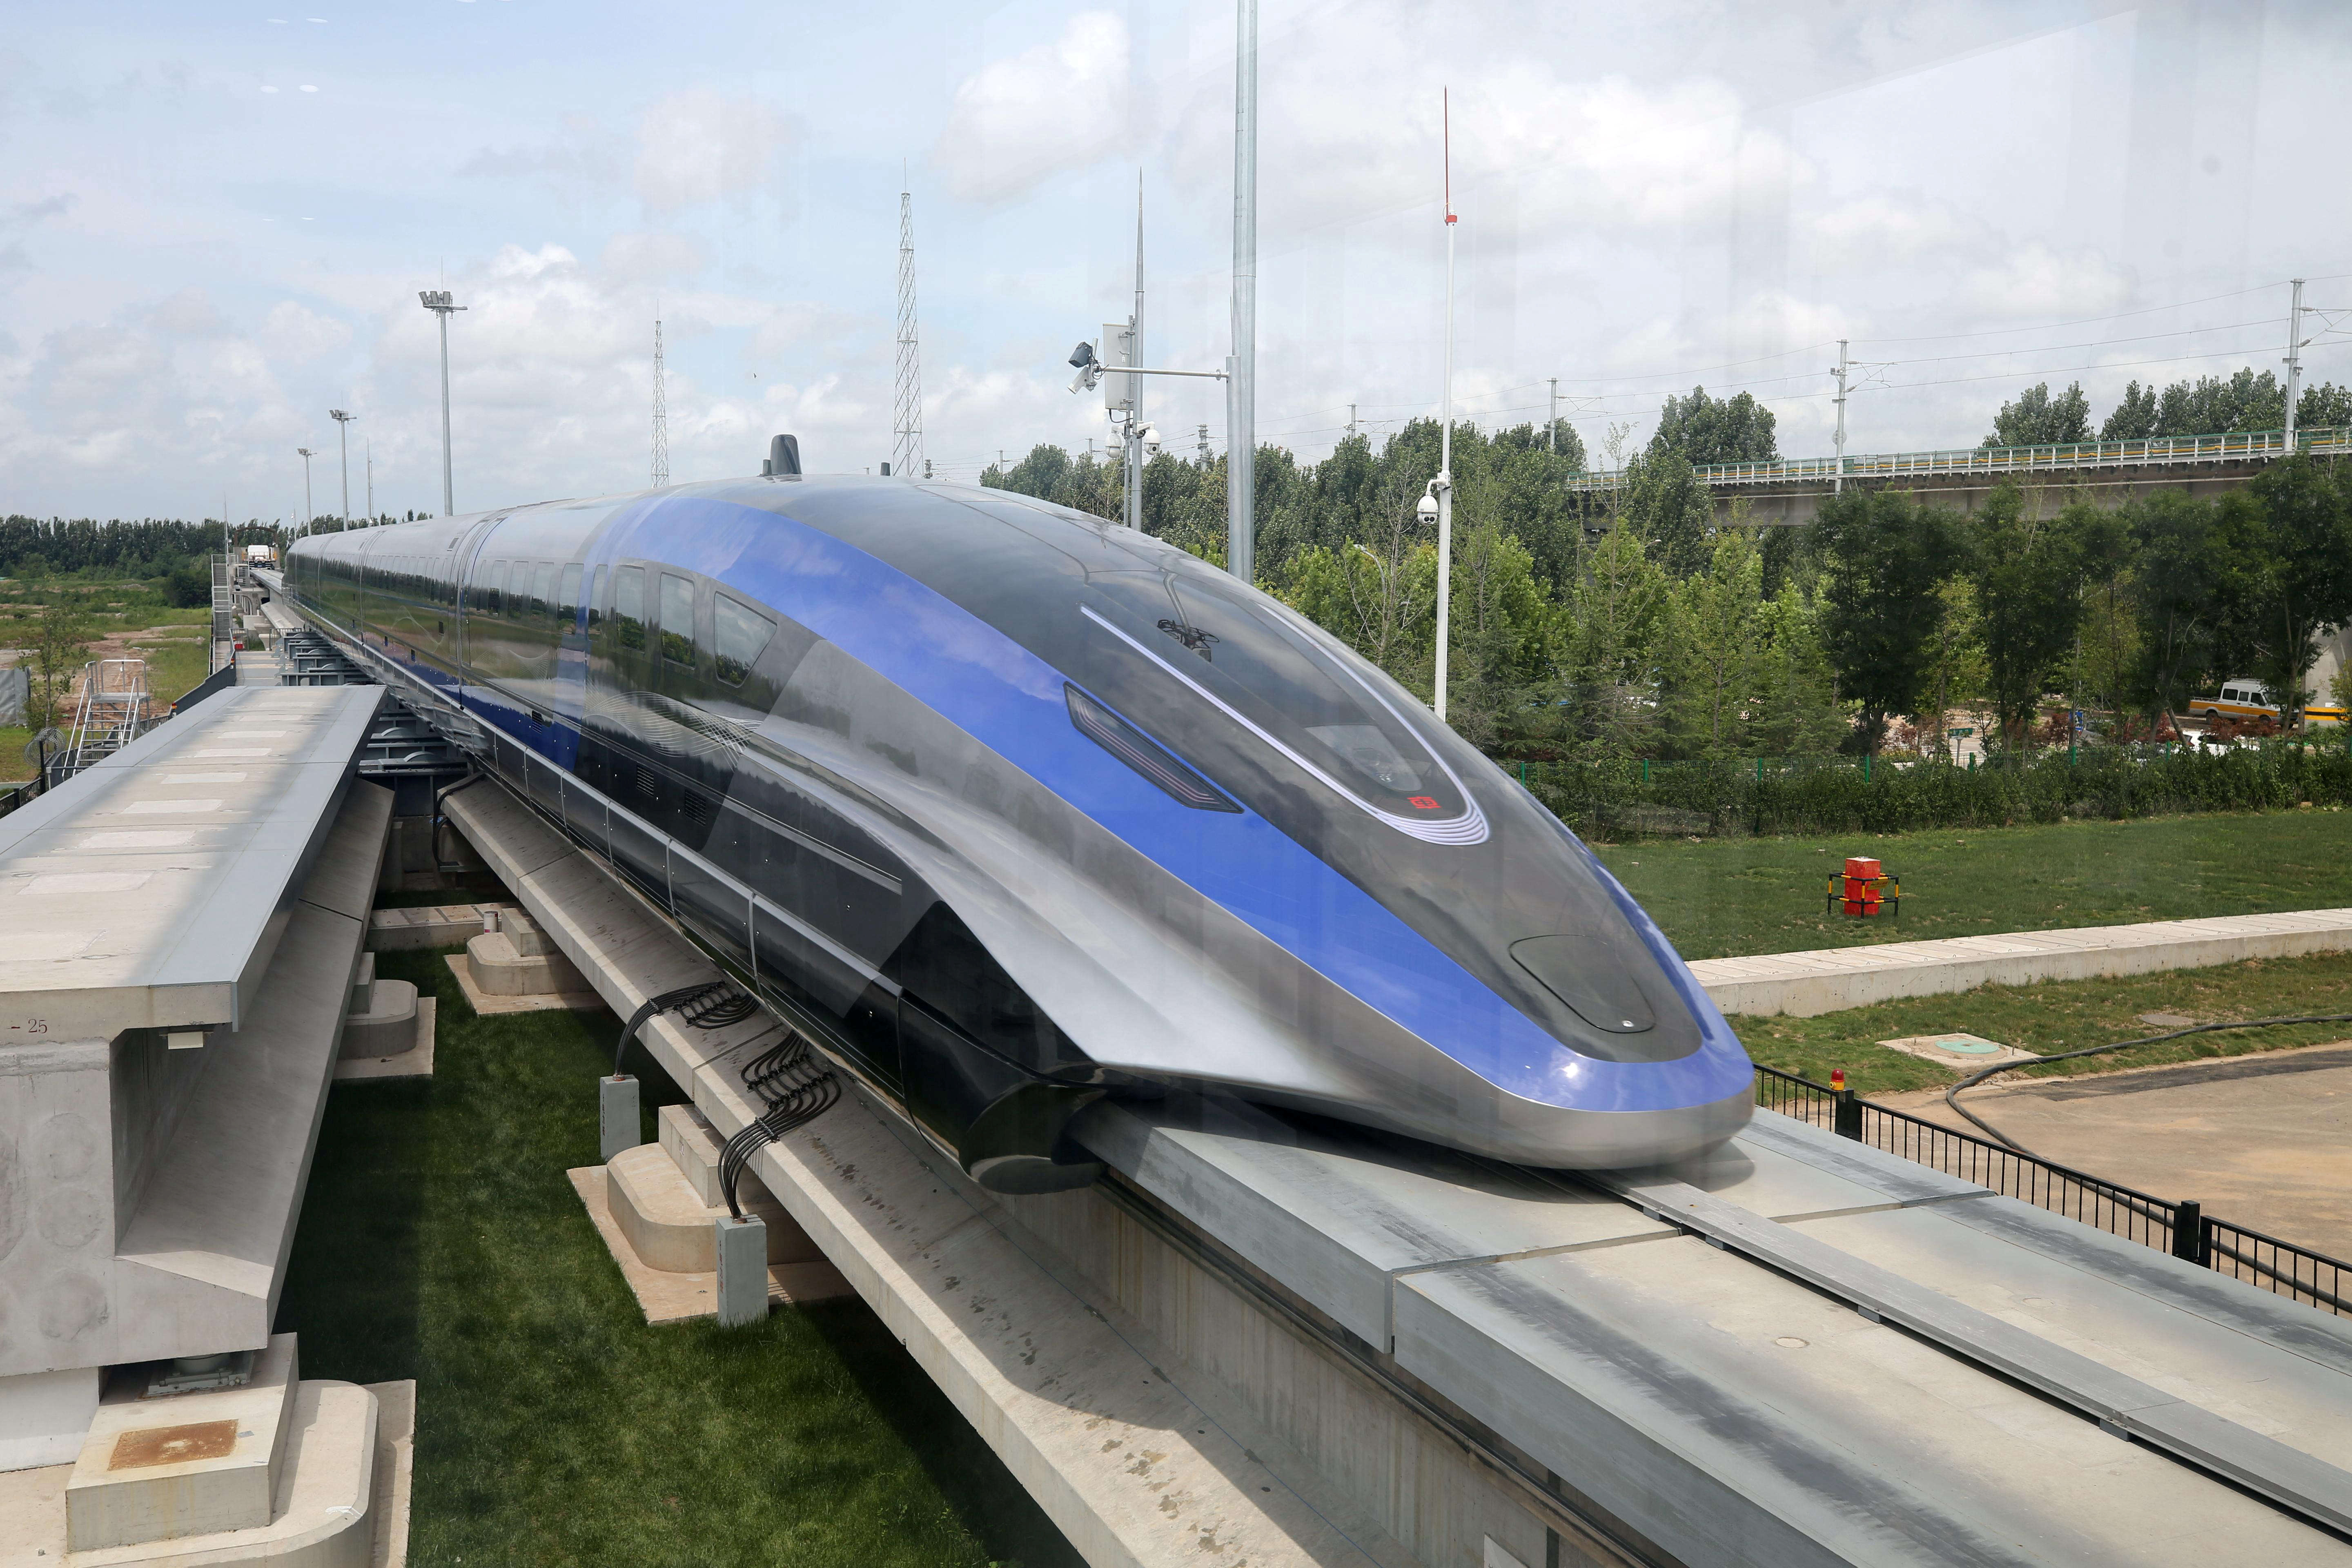 A high-speed maglev train, capable of a top speed of 600 kph, is pictured in Qingdao, Shandong province, China July 20, 2021. cnsphoto via REUTERS